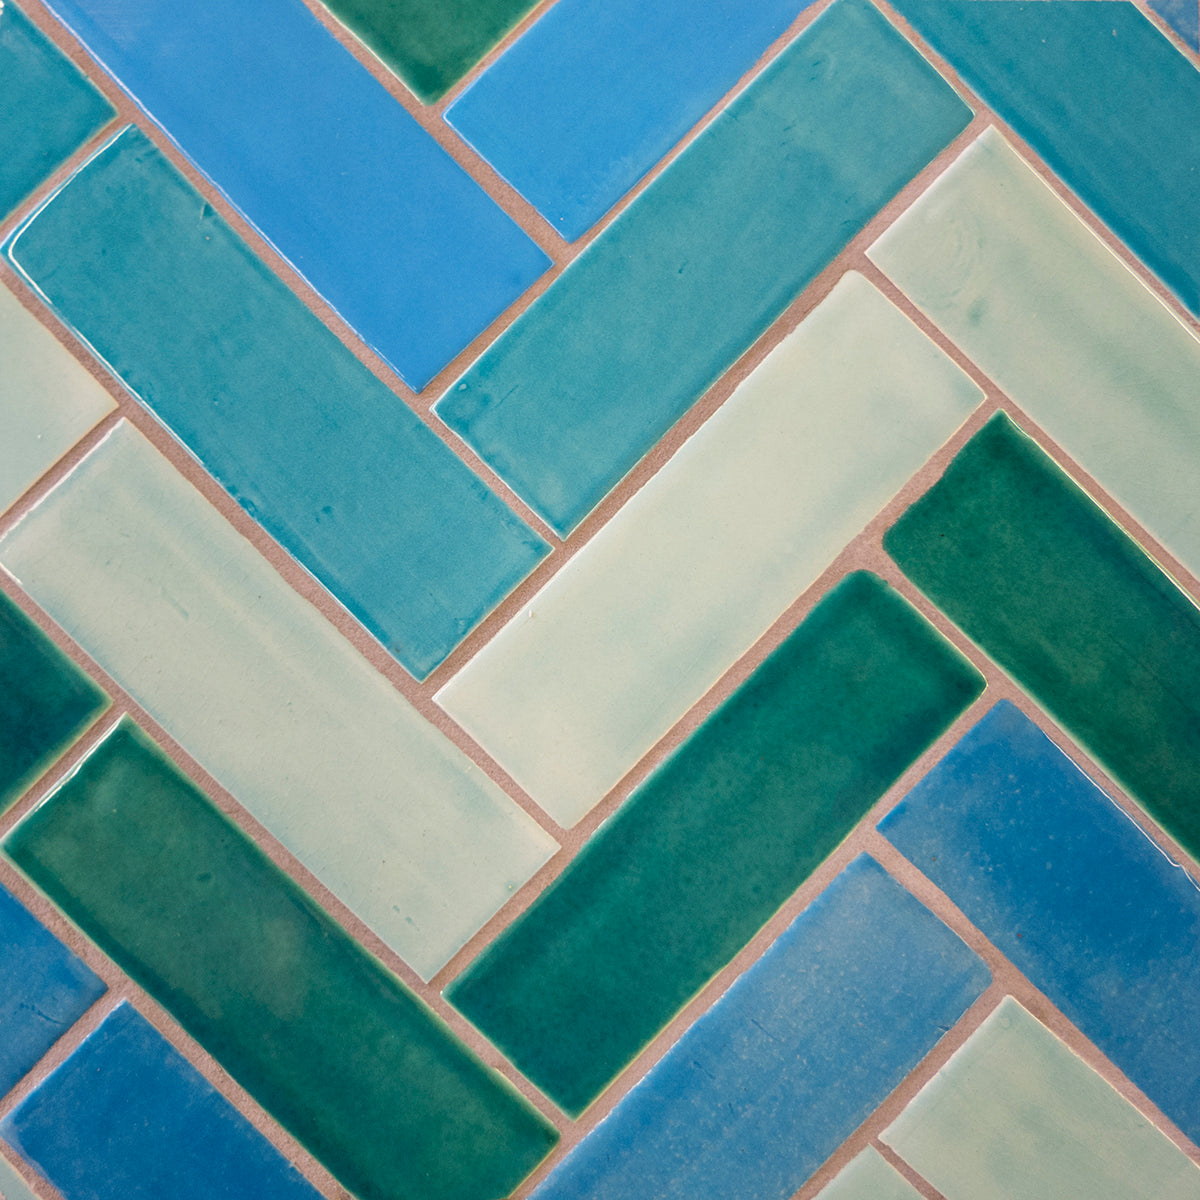 How to choose the perfect subway tile color and pattern mercury header 110816 how to choose the perfect subway tile color and pattern all bathrooms kitchens dailygadgetfo Choice Image